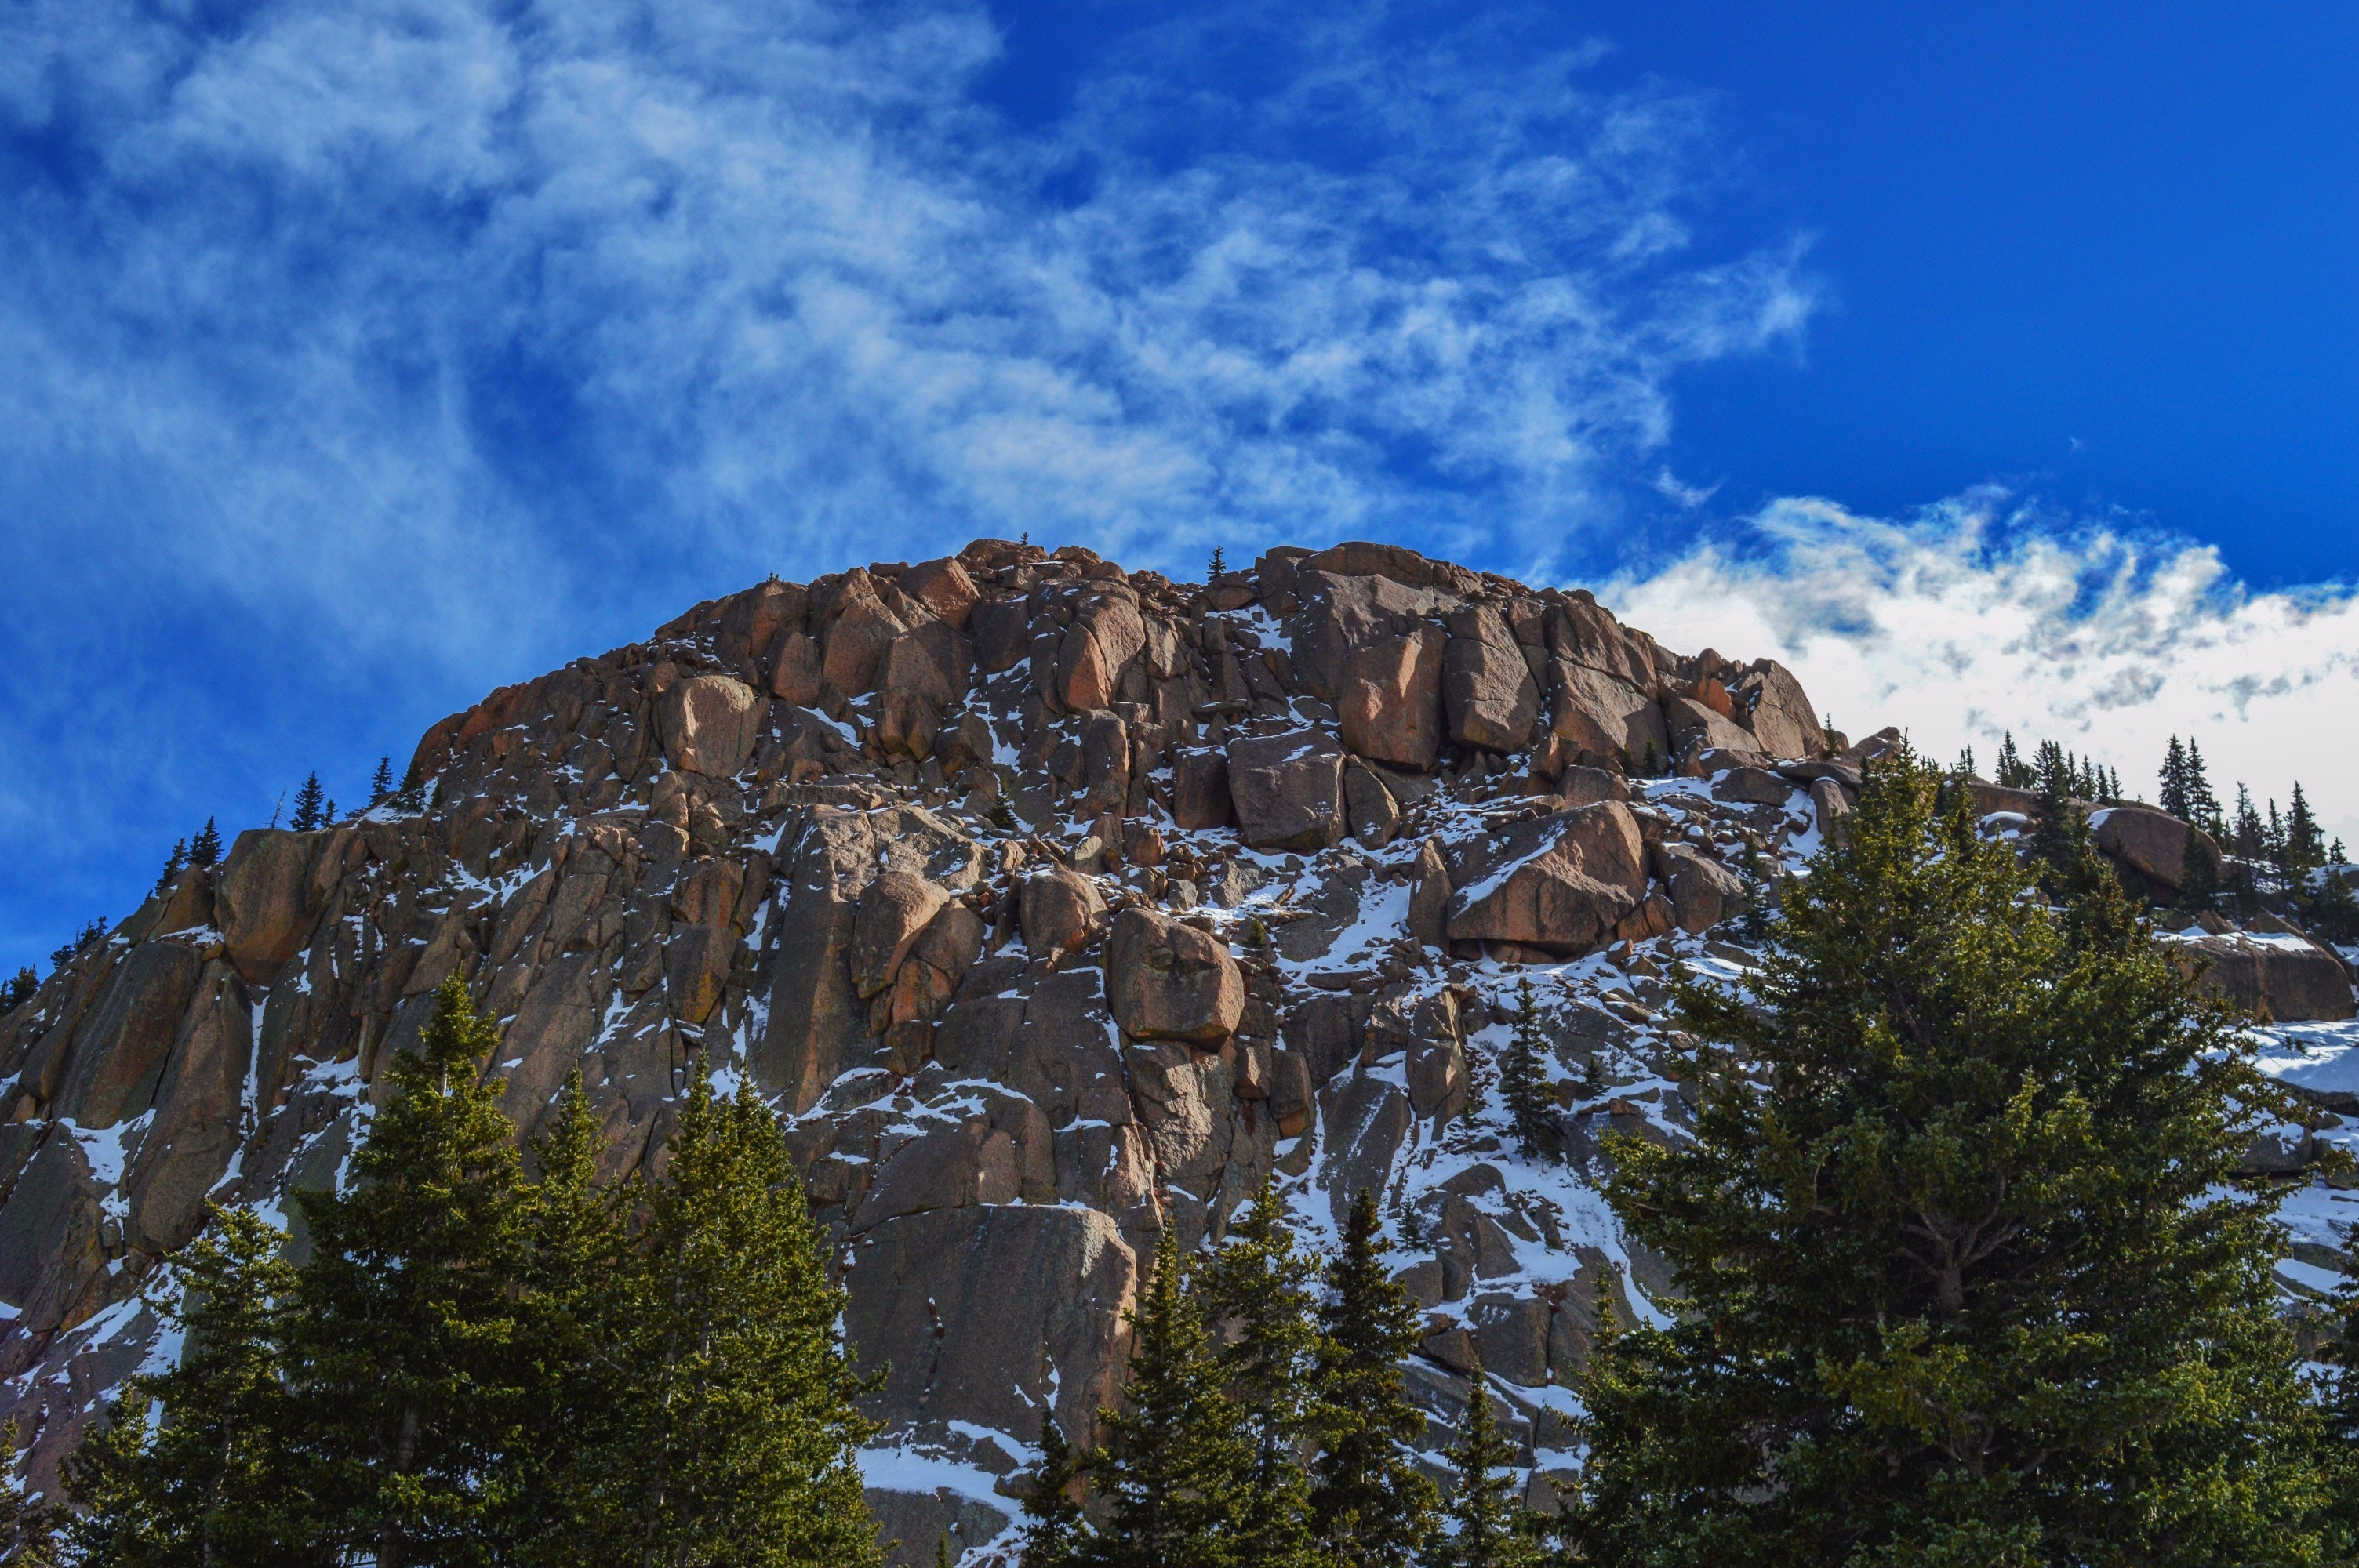 Rock Mountain, Clouds, Scenic, Winter, Weather, HQ Photo